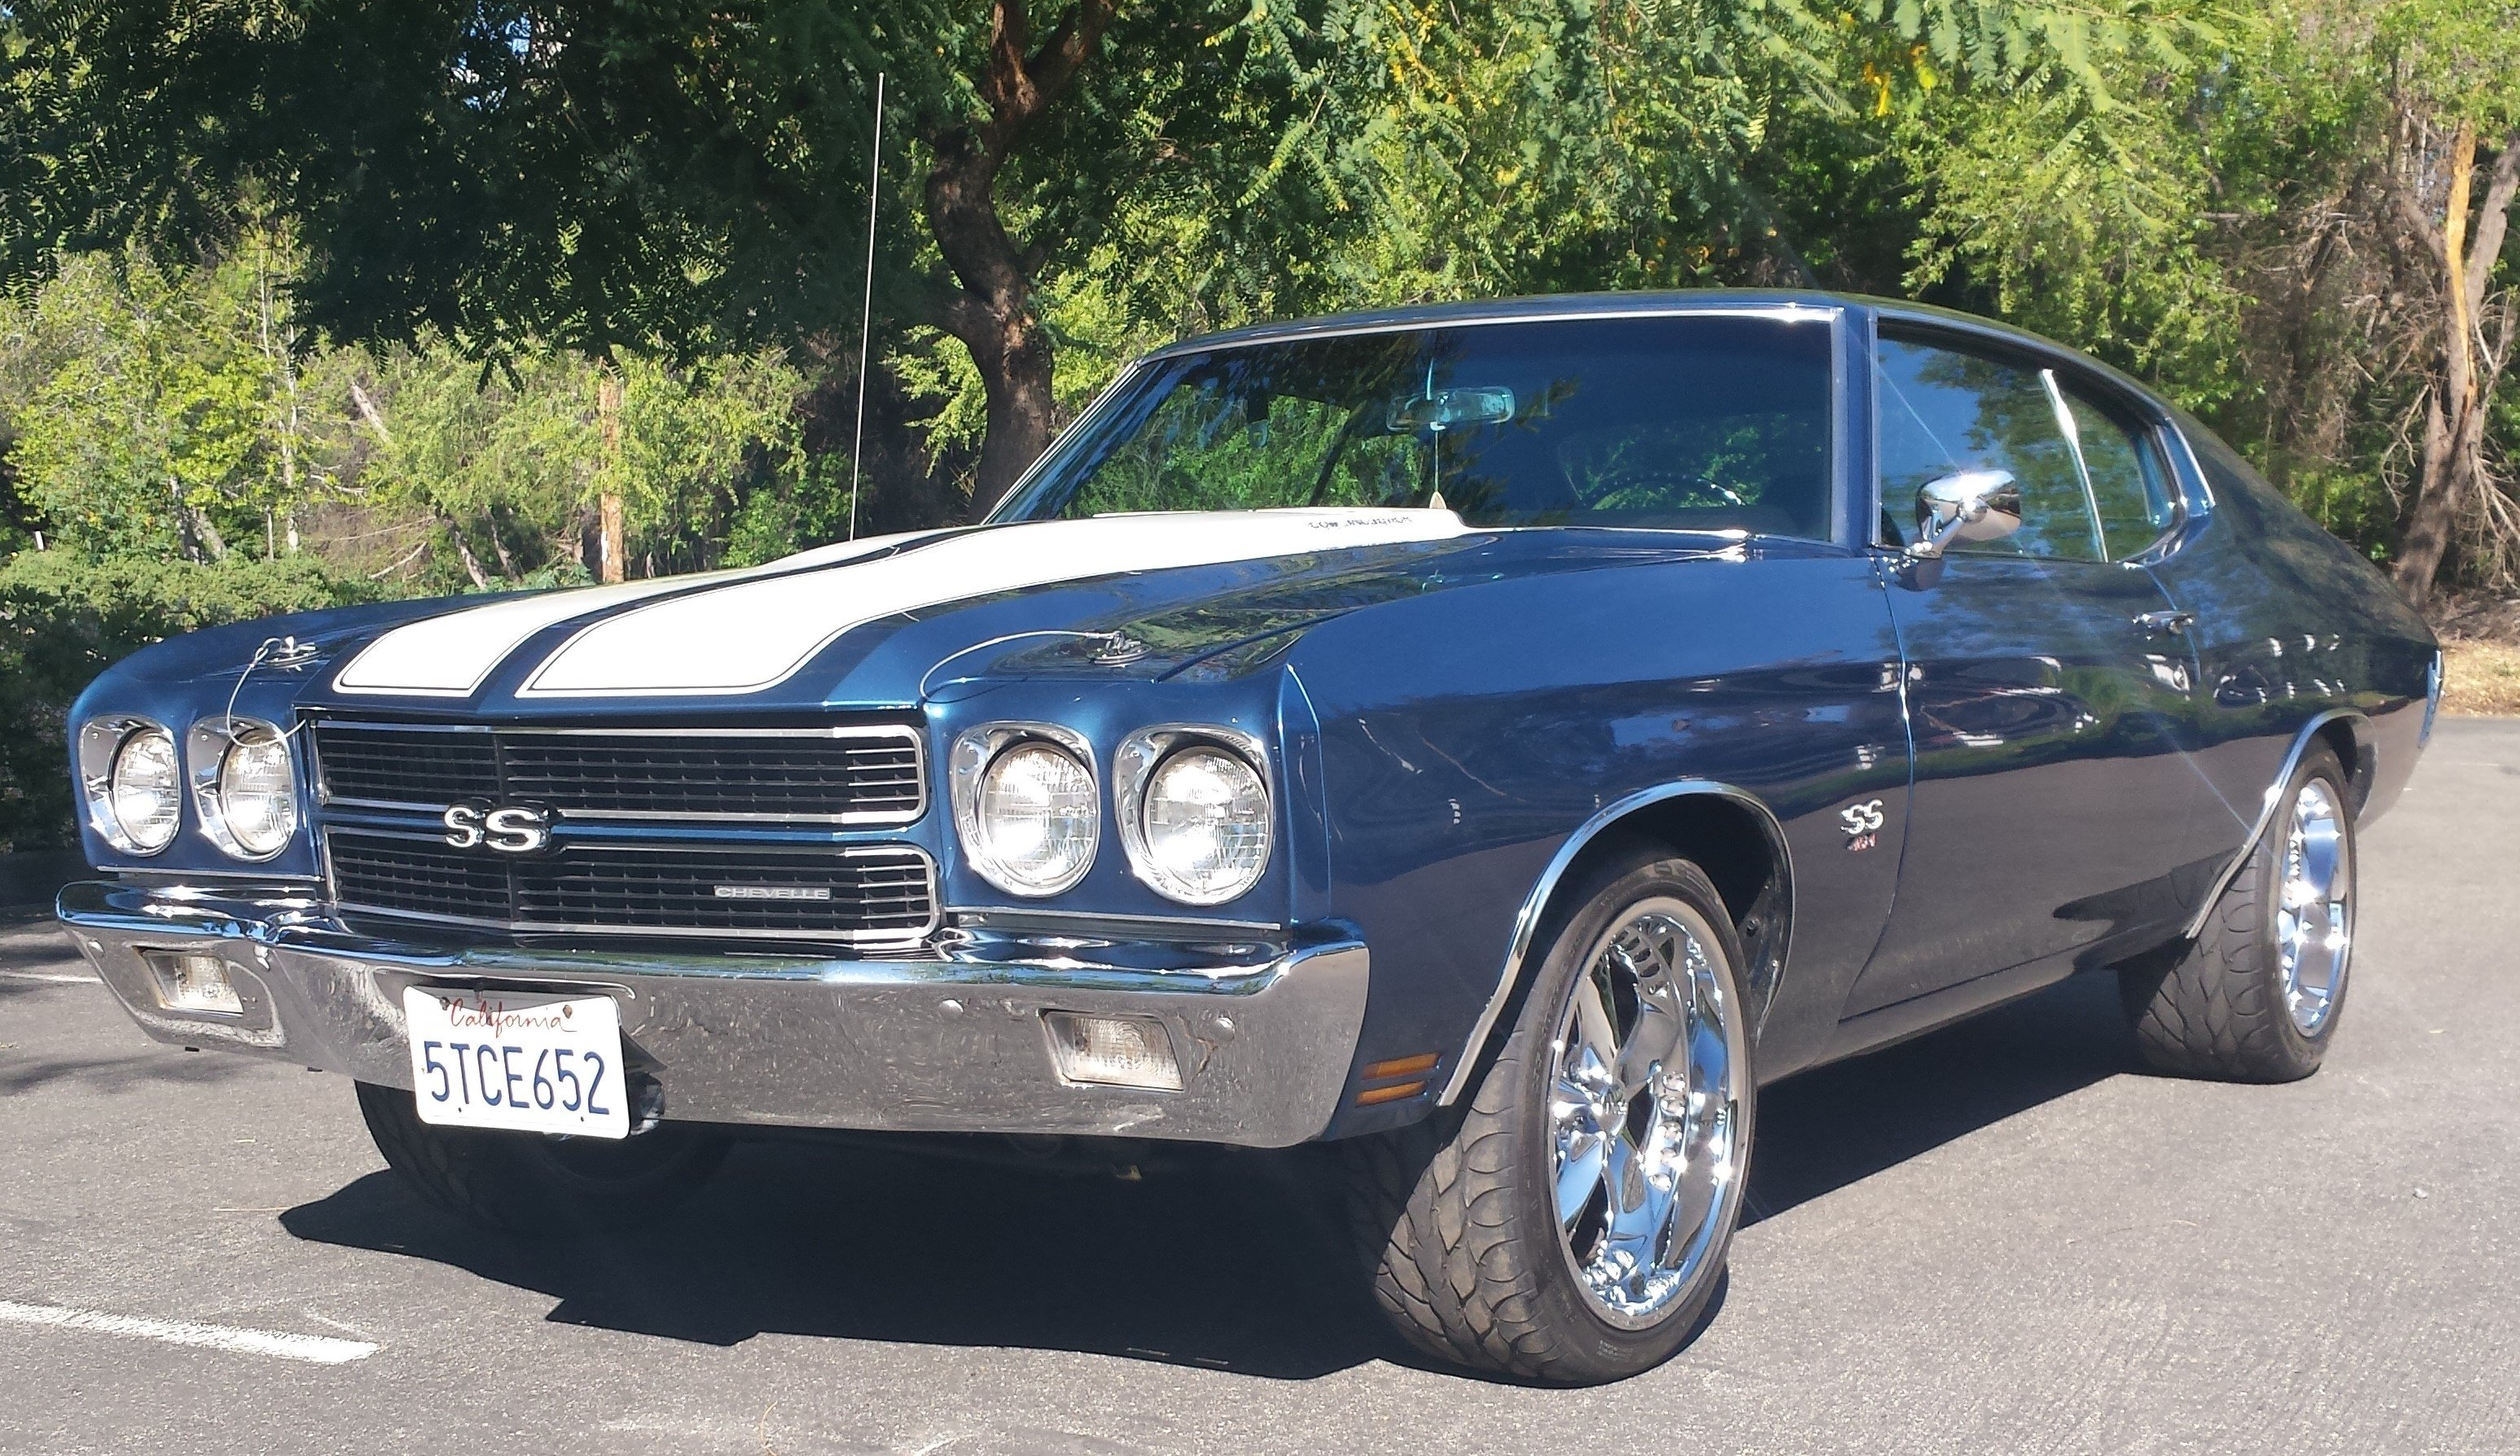 Chevelle Ss >> Chevrolet Chevelle Classics For Sale Classics On Autotrader